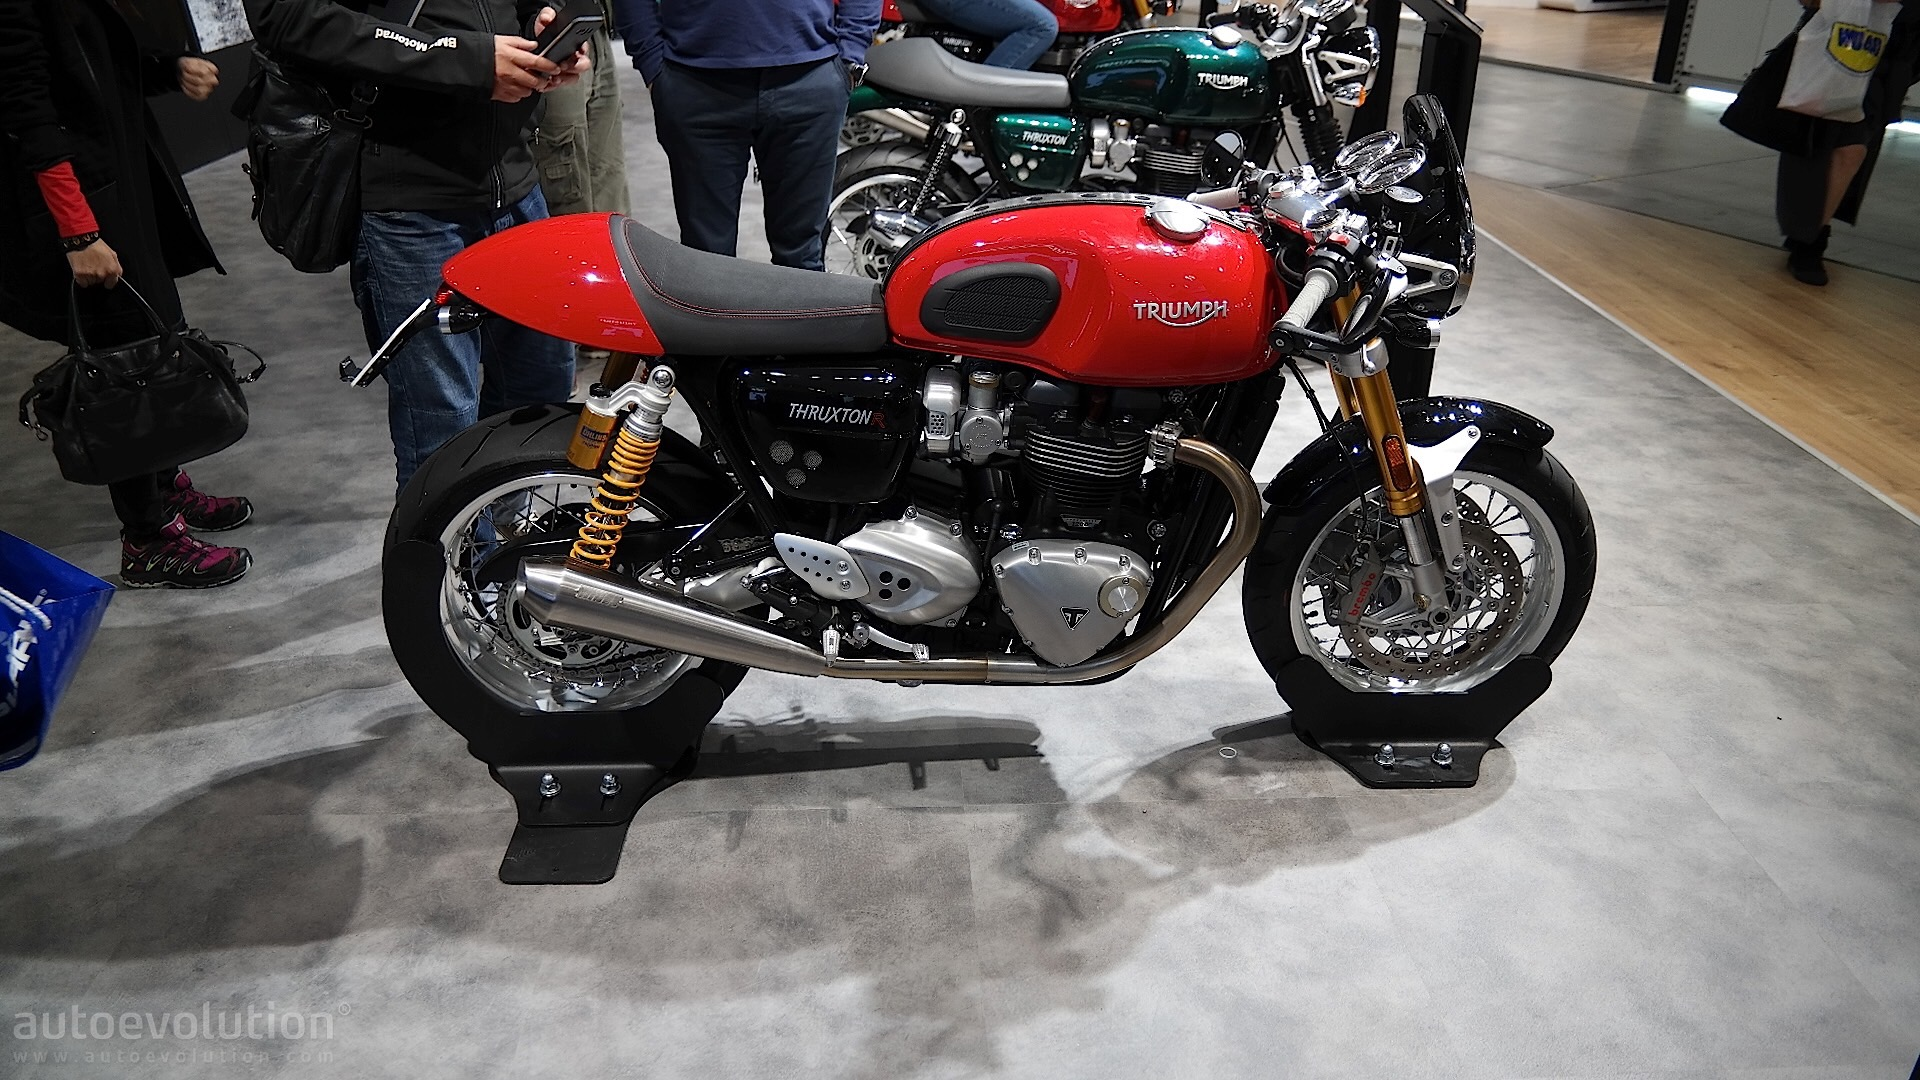 eicma 2015 triumph thruxton and thruxton r look sharp and tidy autoevolution. Black Bedroom Furniture Sets. Home Design Ideas